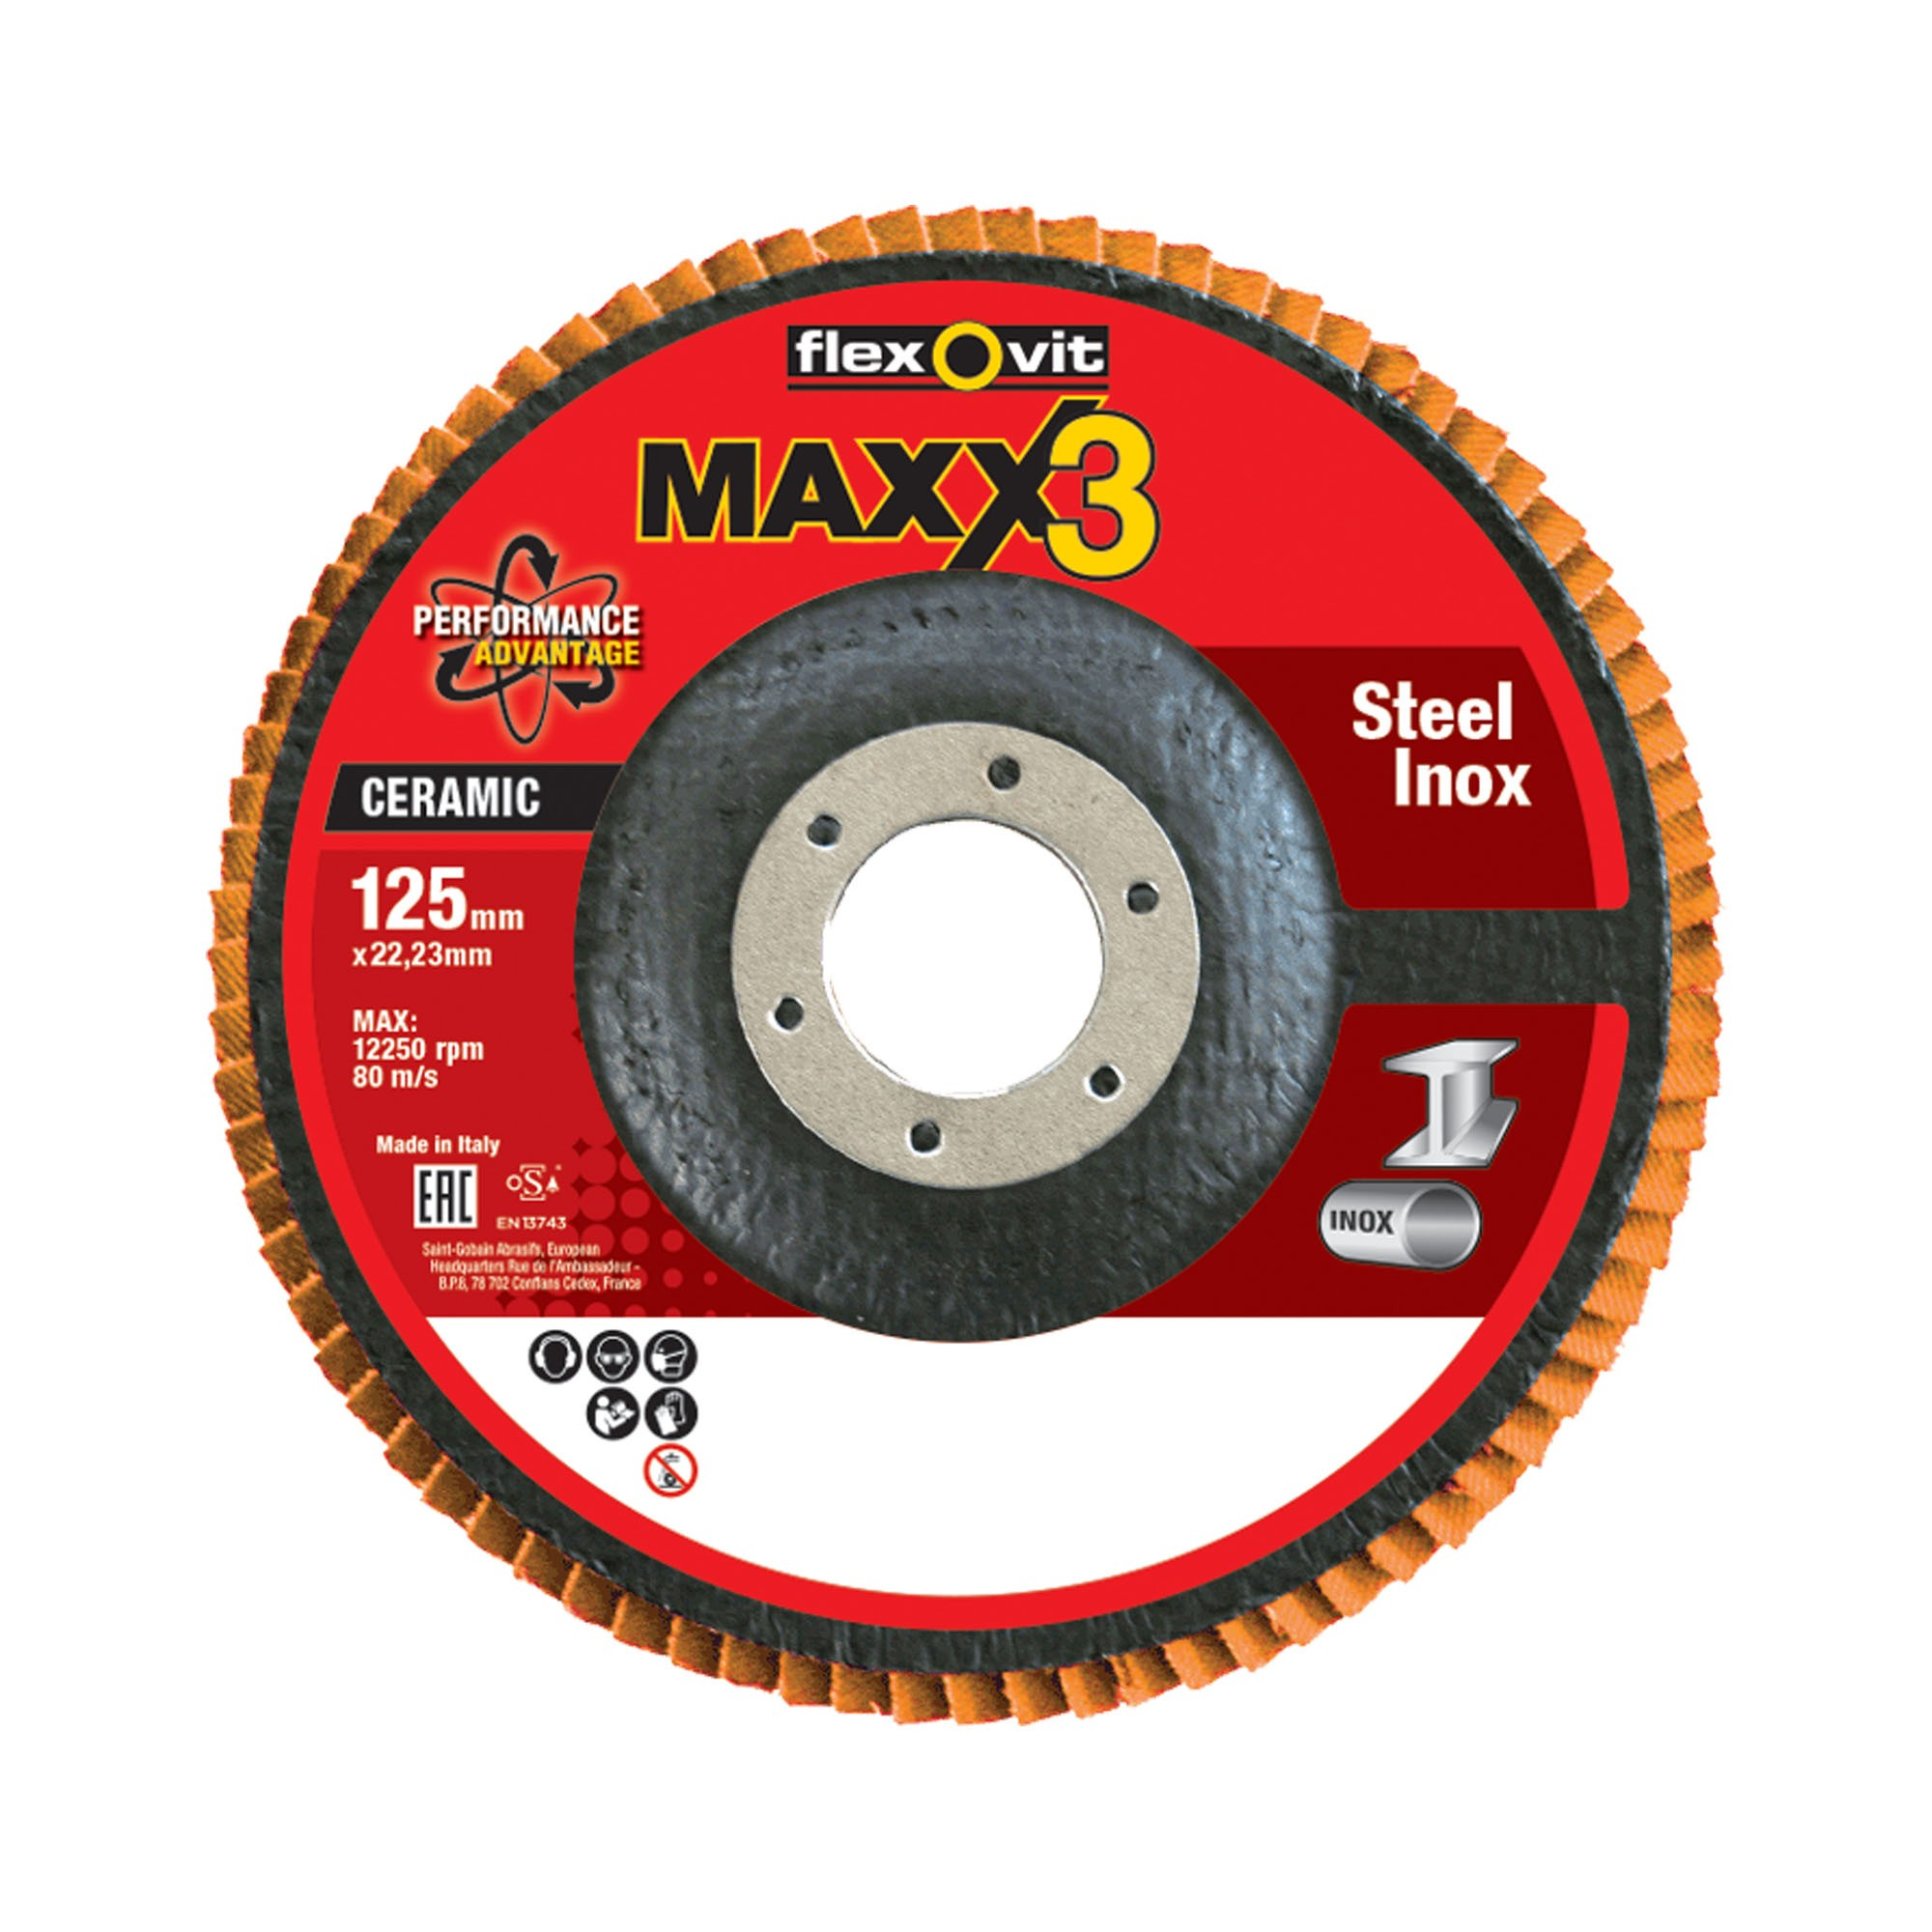 Flexovit Maxx3 125mm flap discs 125mm_74370